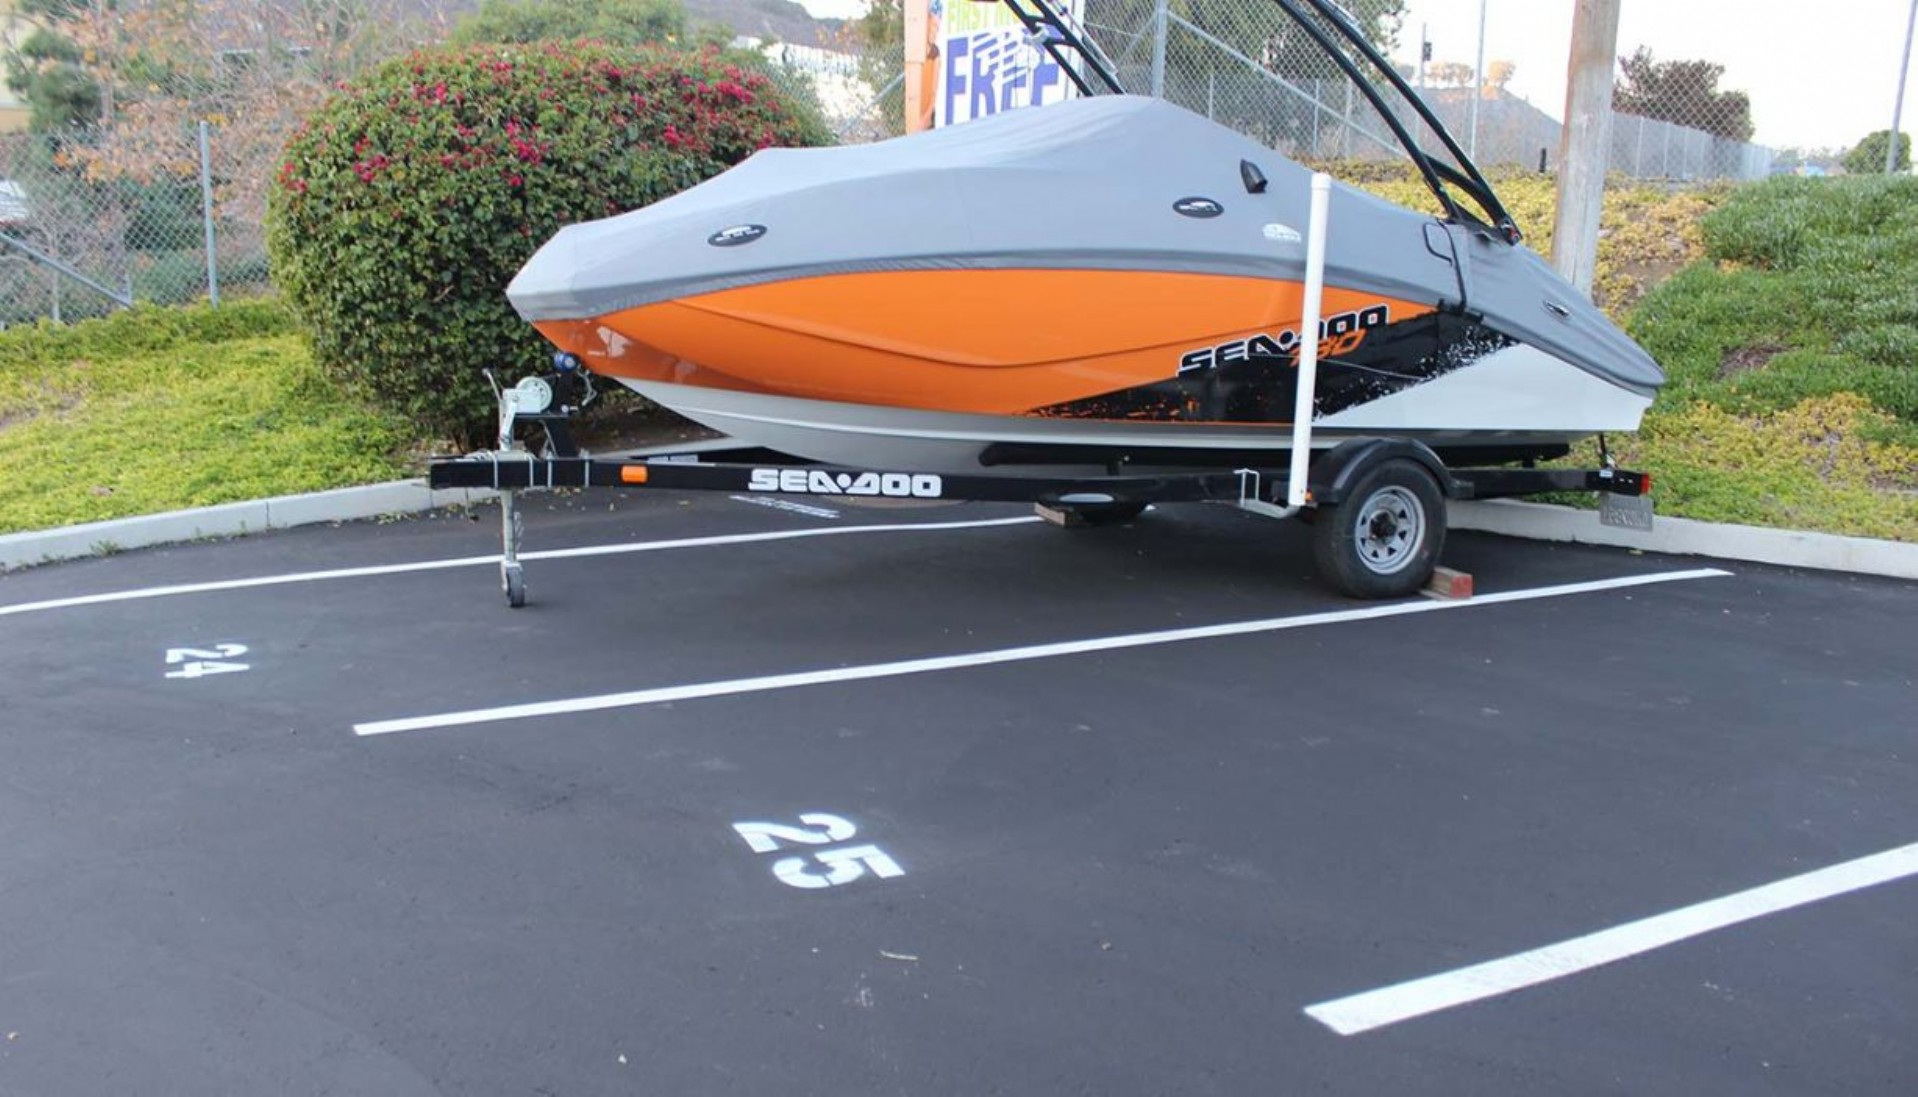 Boat parked in vehicle storage space